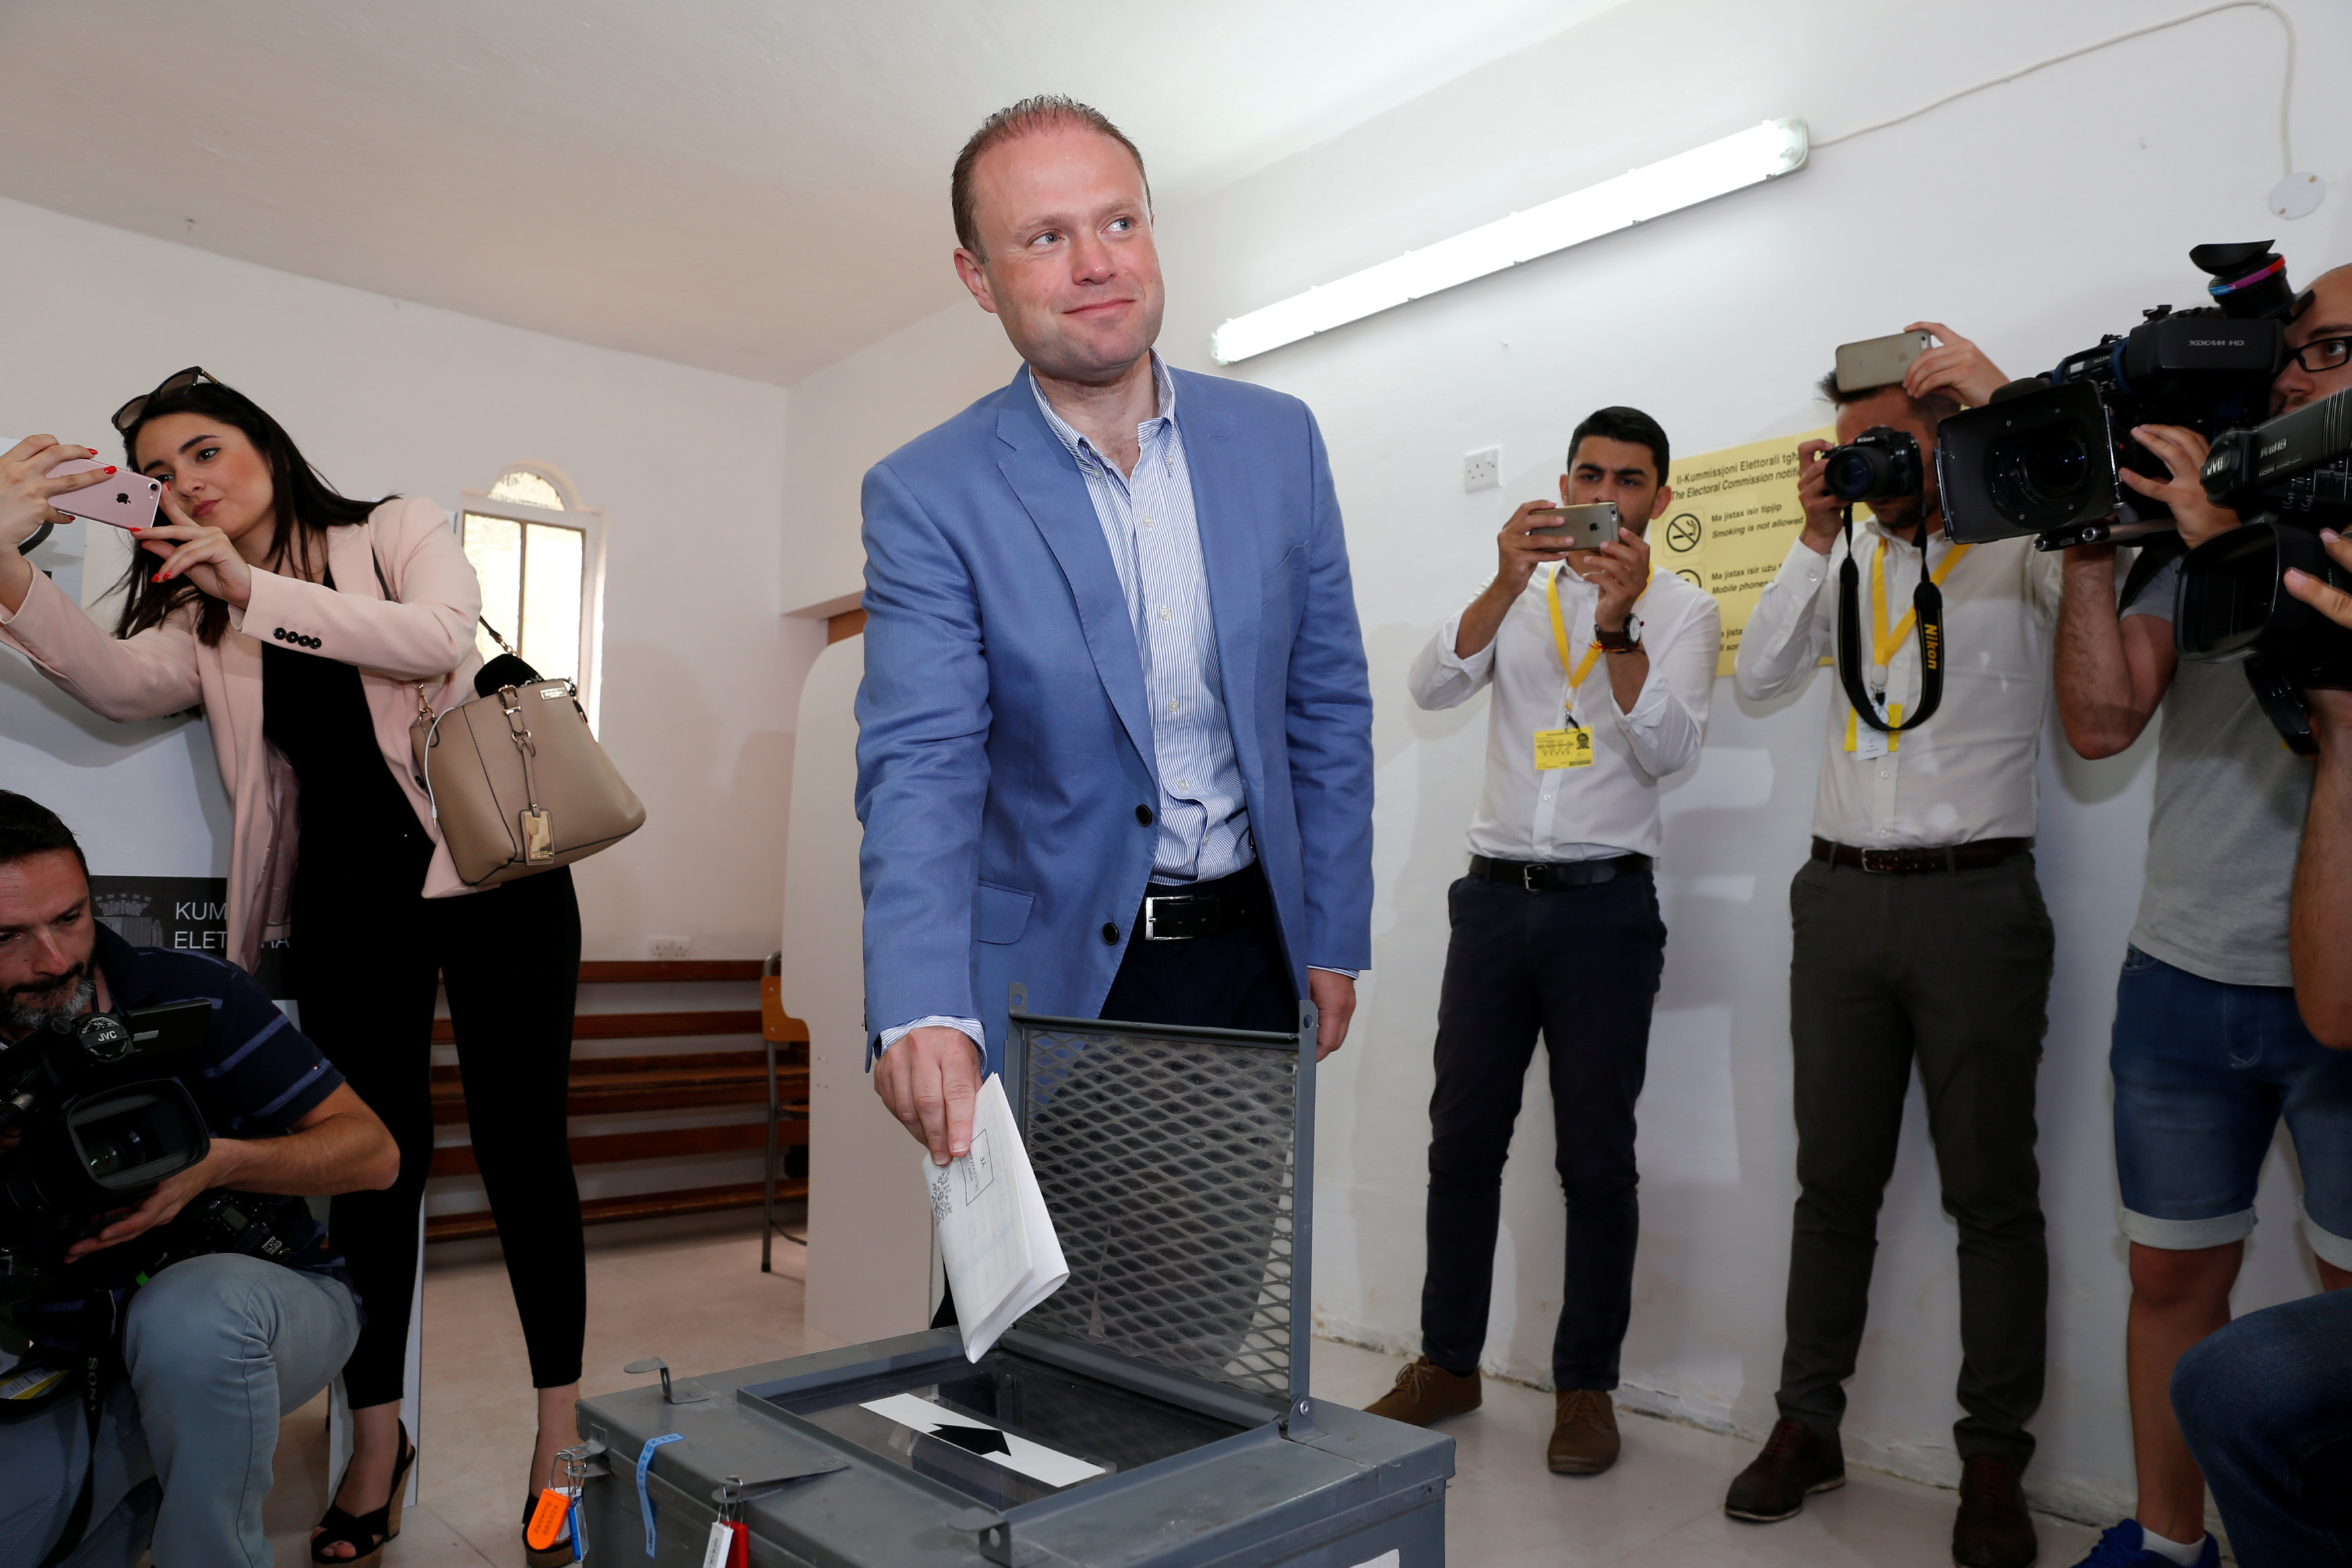 Malta votes in snap election amid corruption scandal